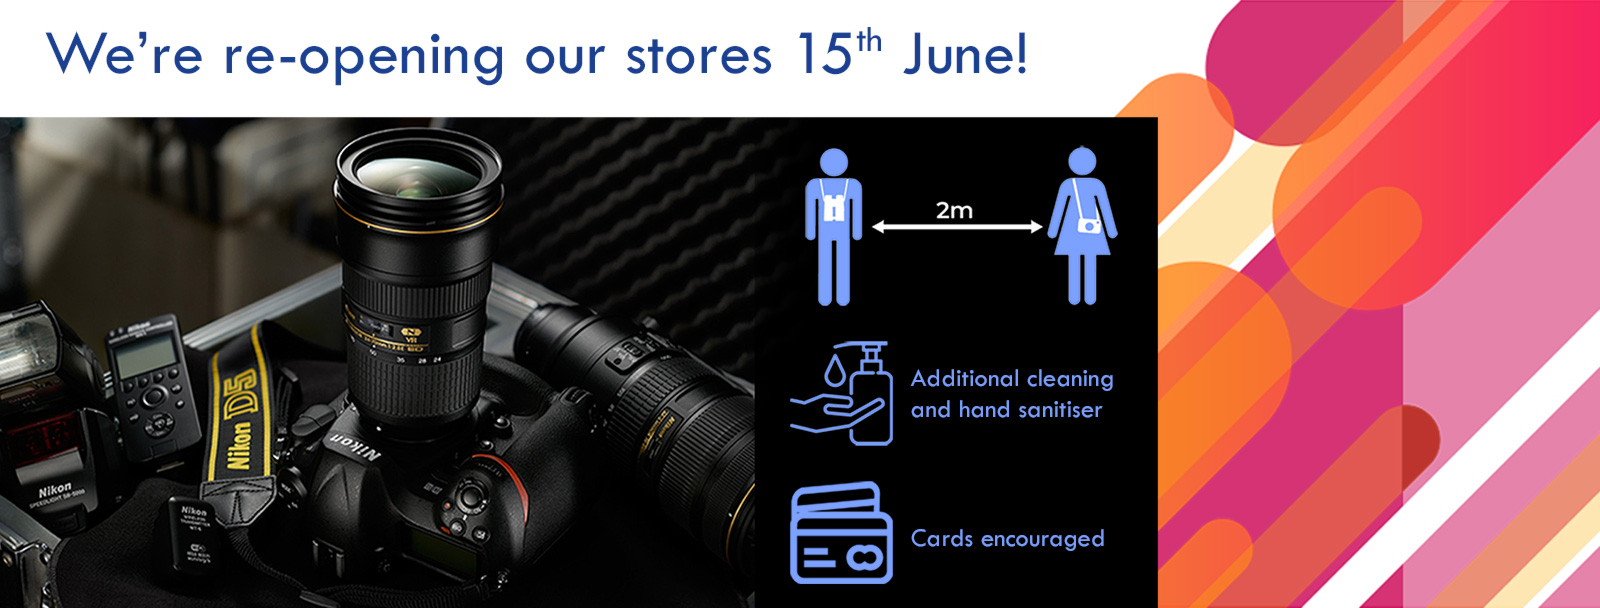 Our photography stores are reopening!